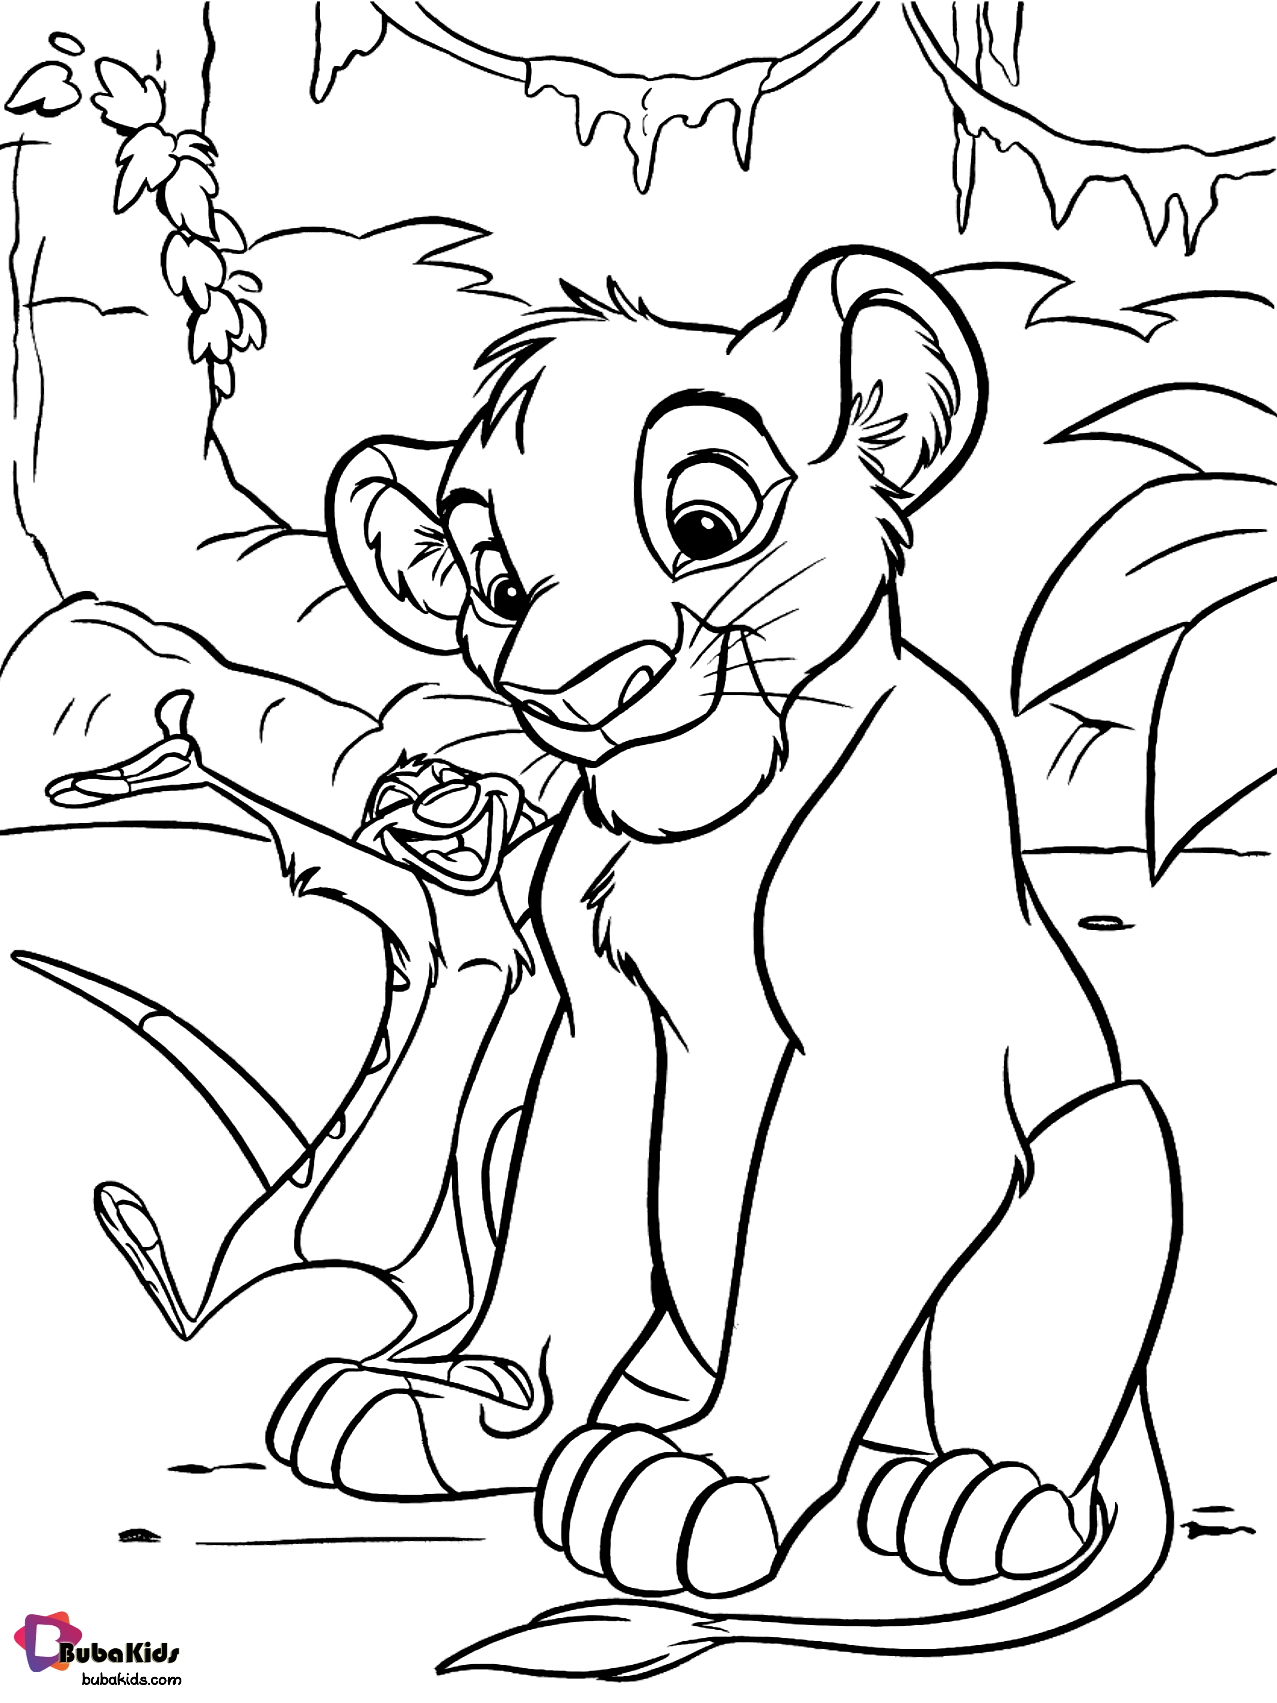 Simba The Lion King Coloring Page In